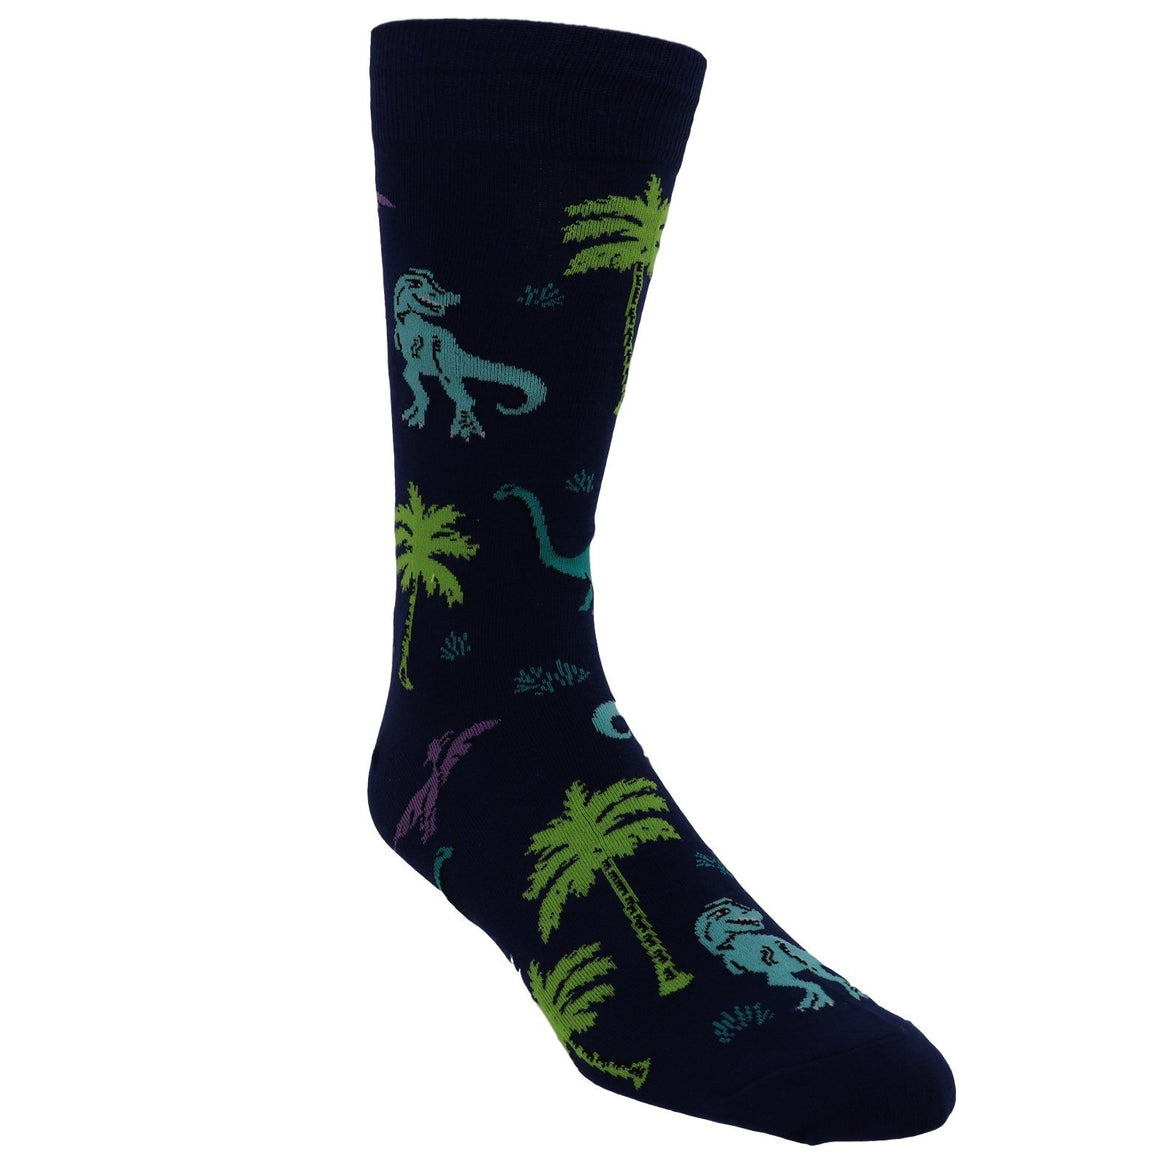 Land of the Dino Men's Socks by Sock it to Me - The Sock Spot